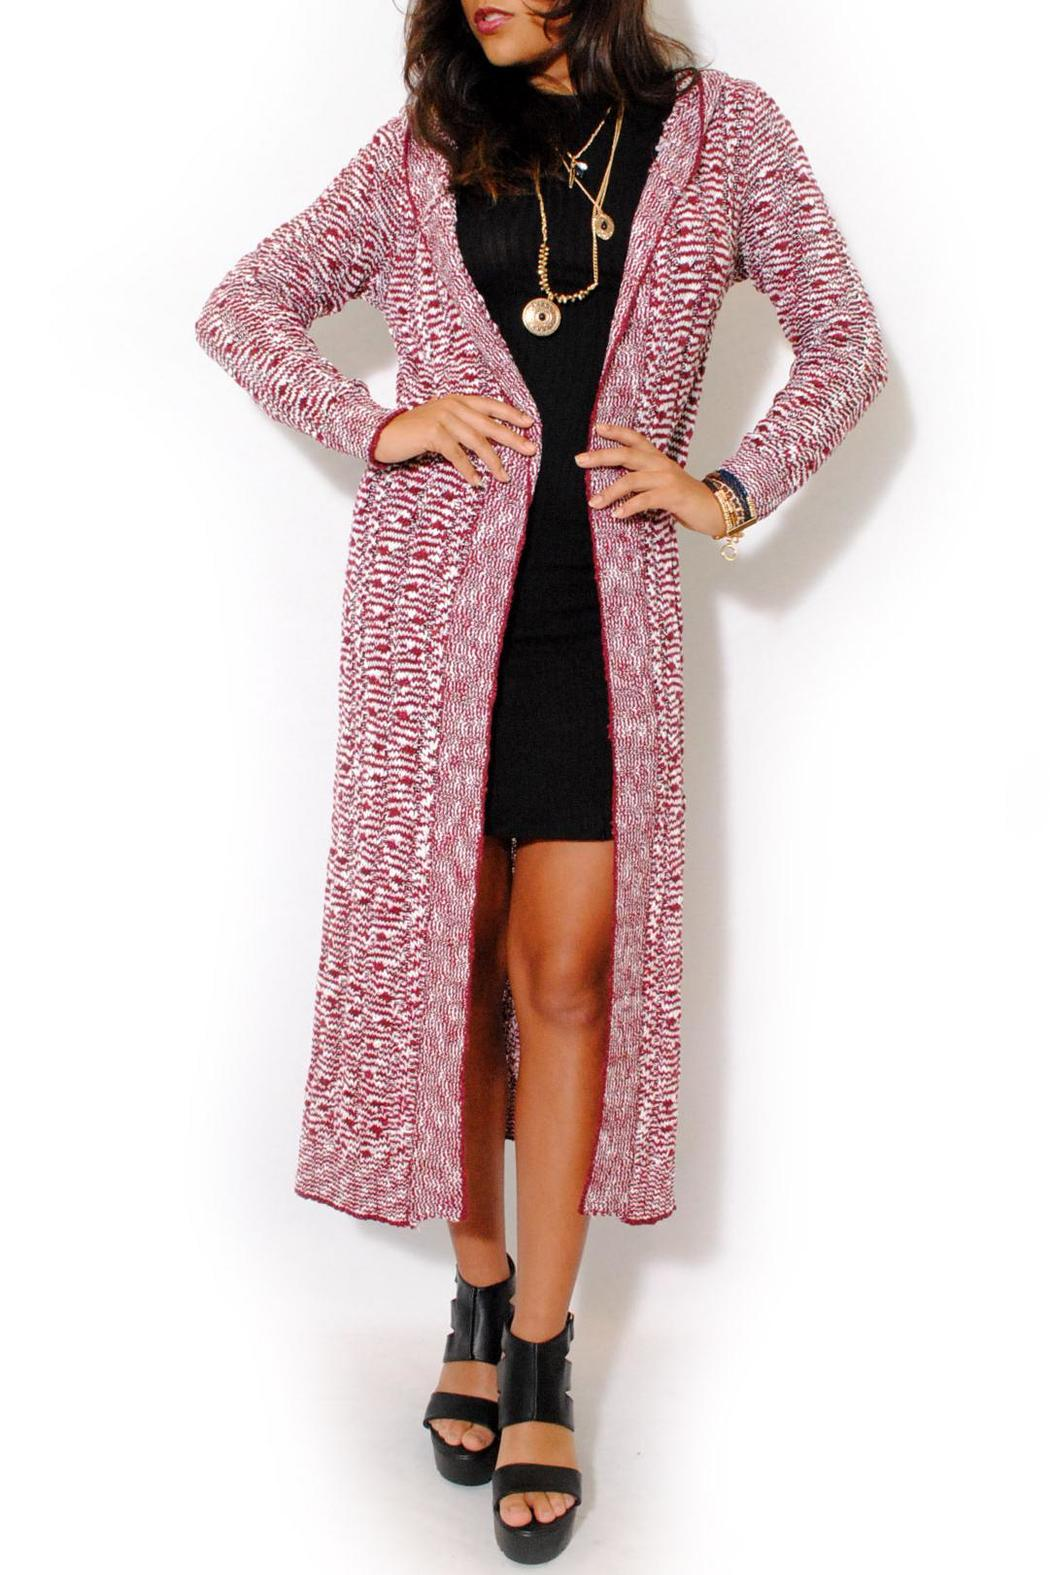 Double Zero Duster Hoodie Cardigan from Miami by L.A. Roxx ...